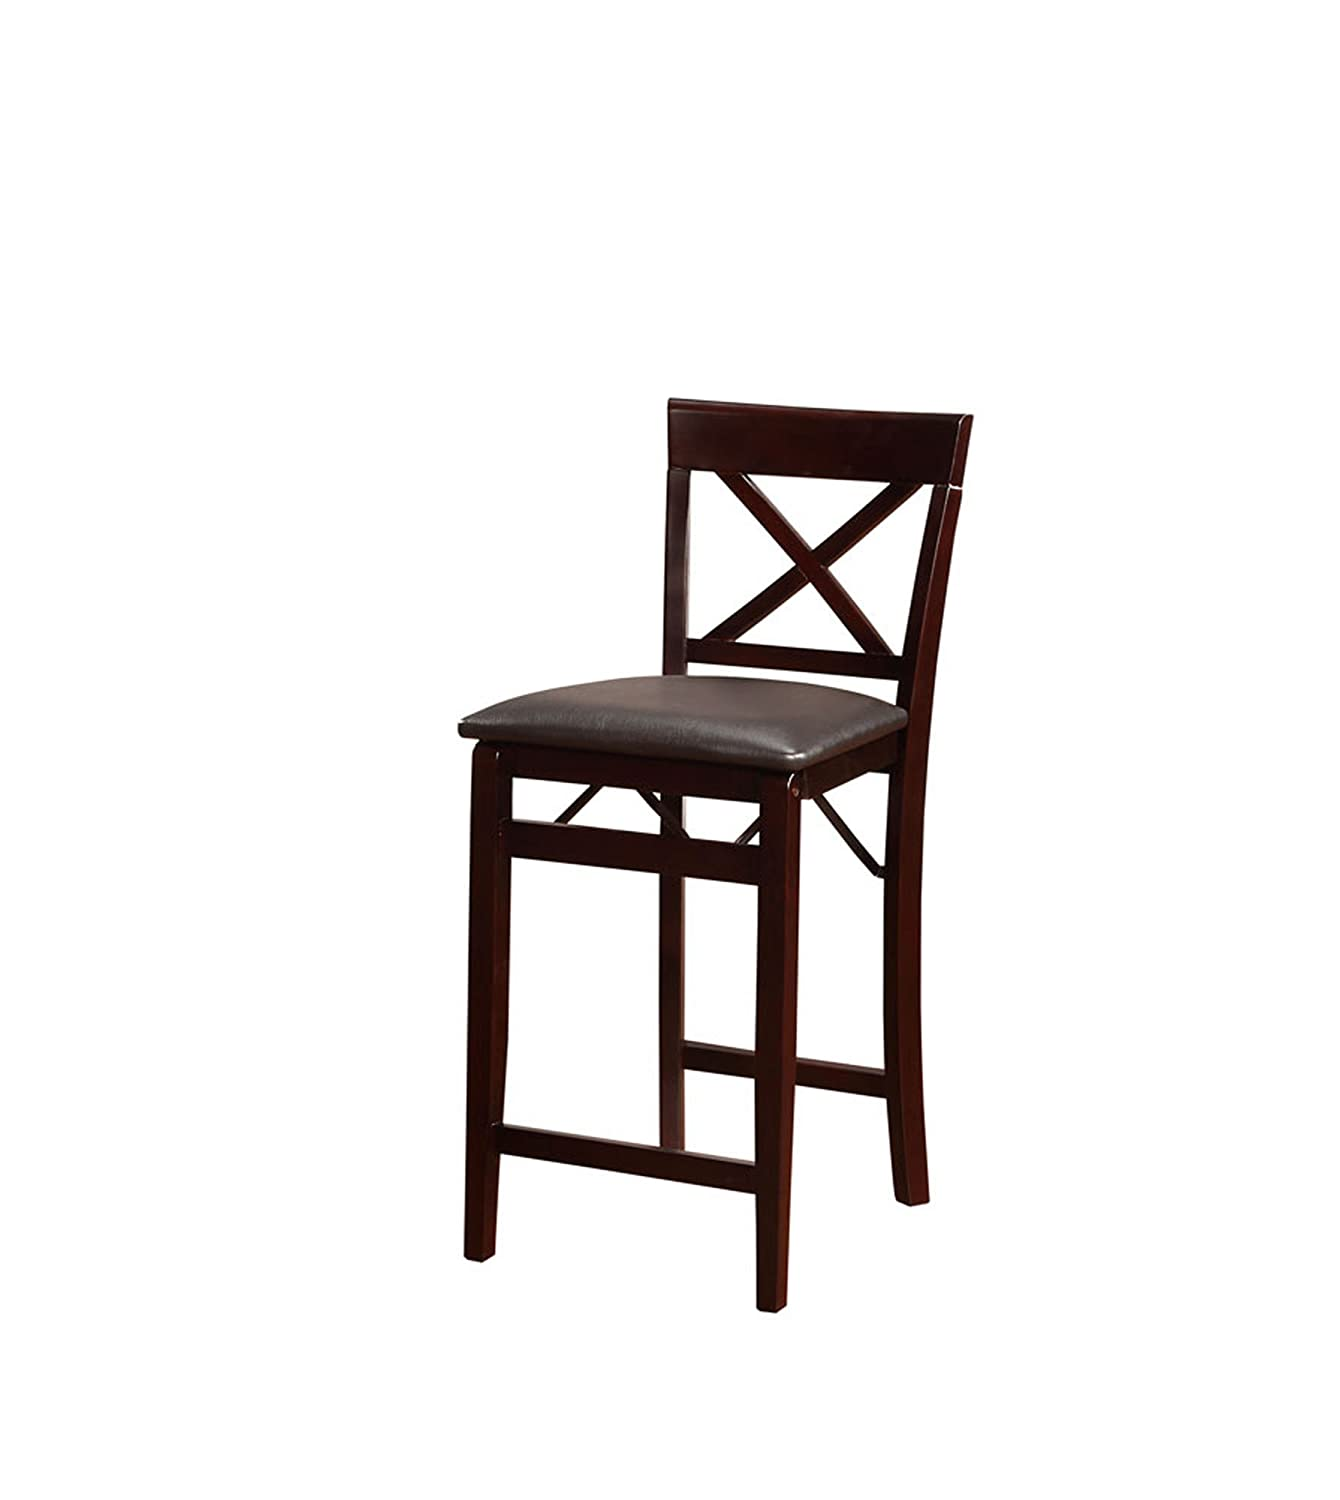 macadam uk white bar stools metal care instructions habitat at buy now folding stool